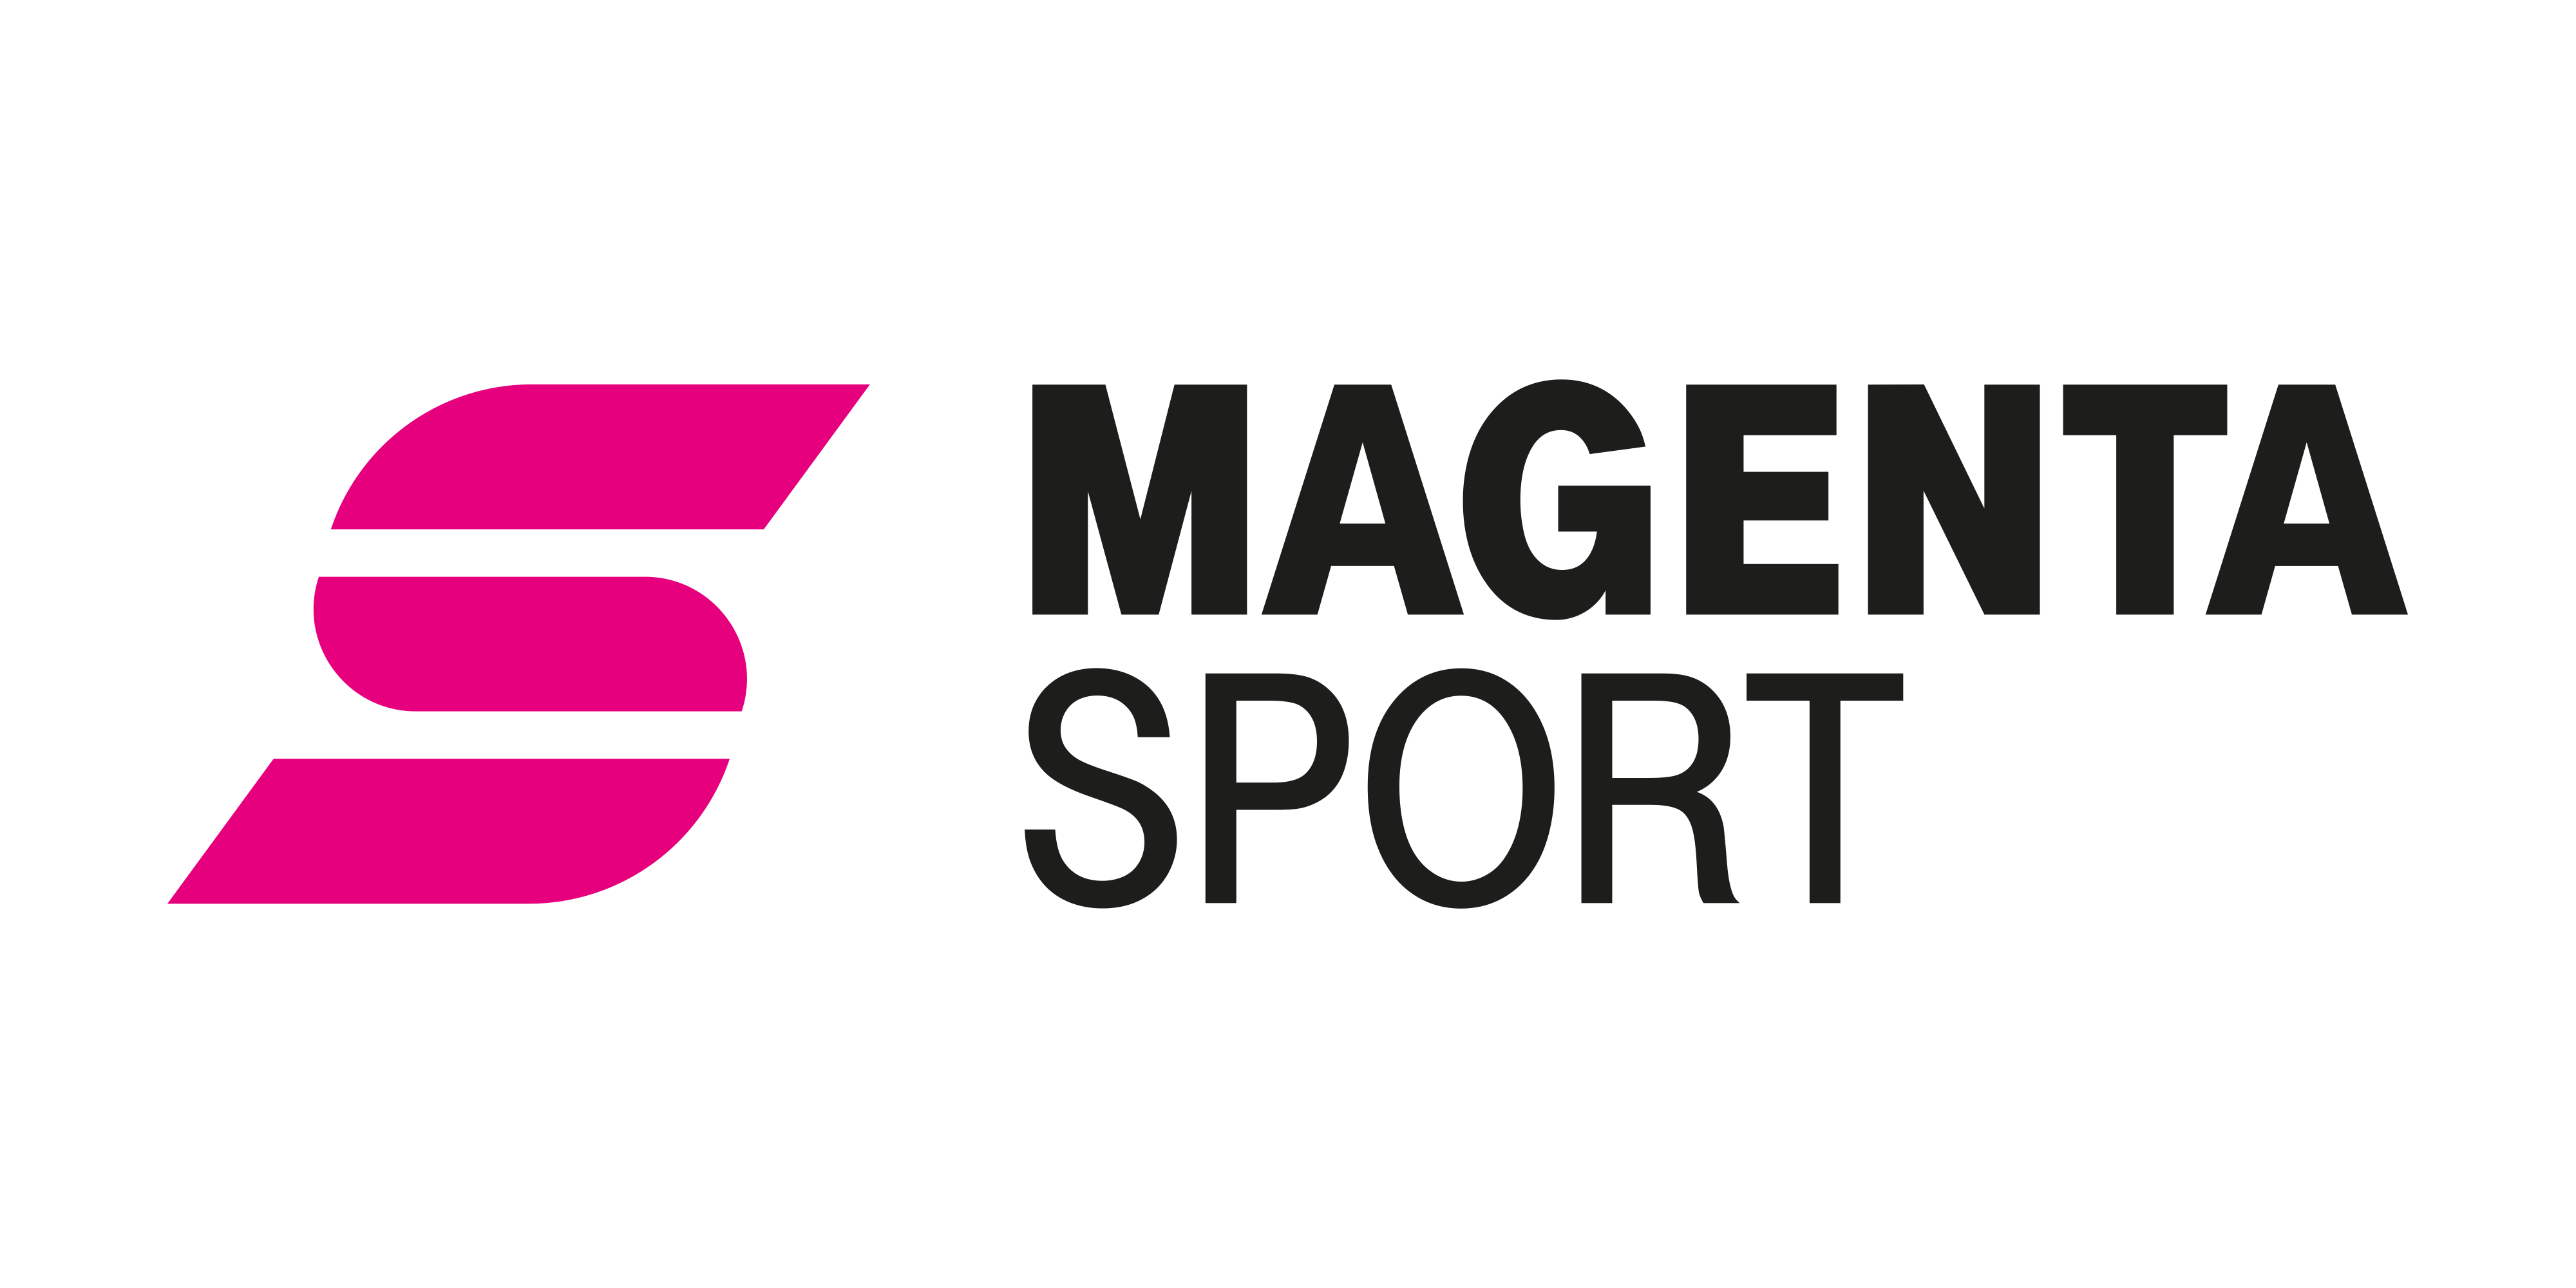 Konferenz-Alarm for MagentaSport by Sportradar